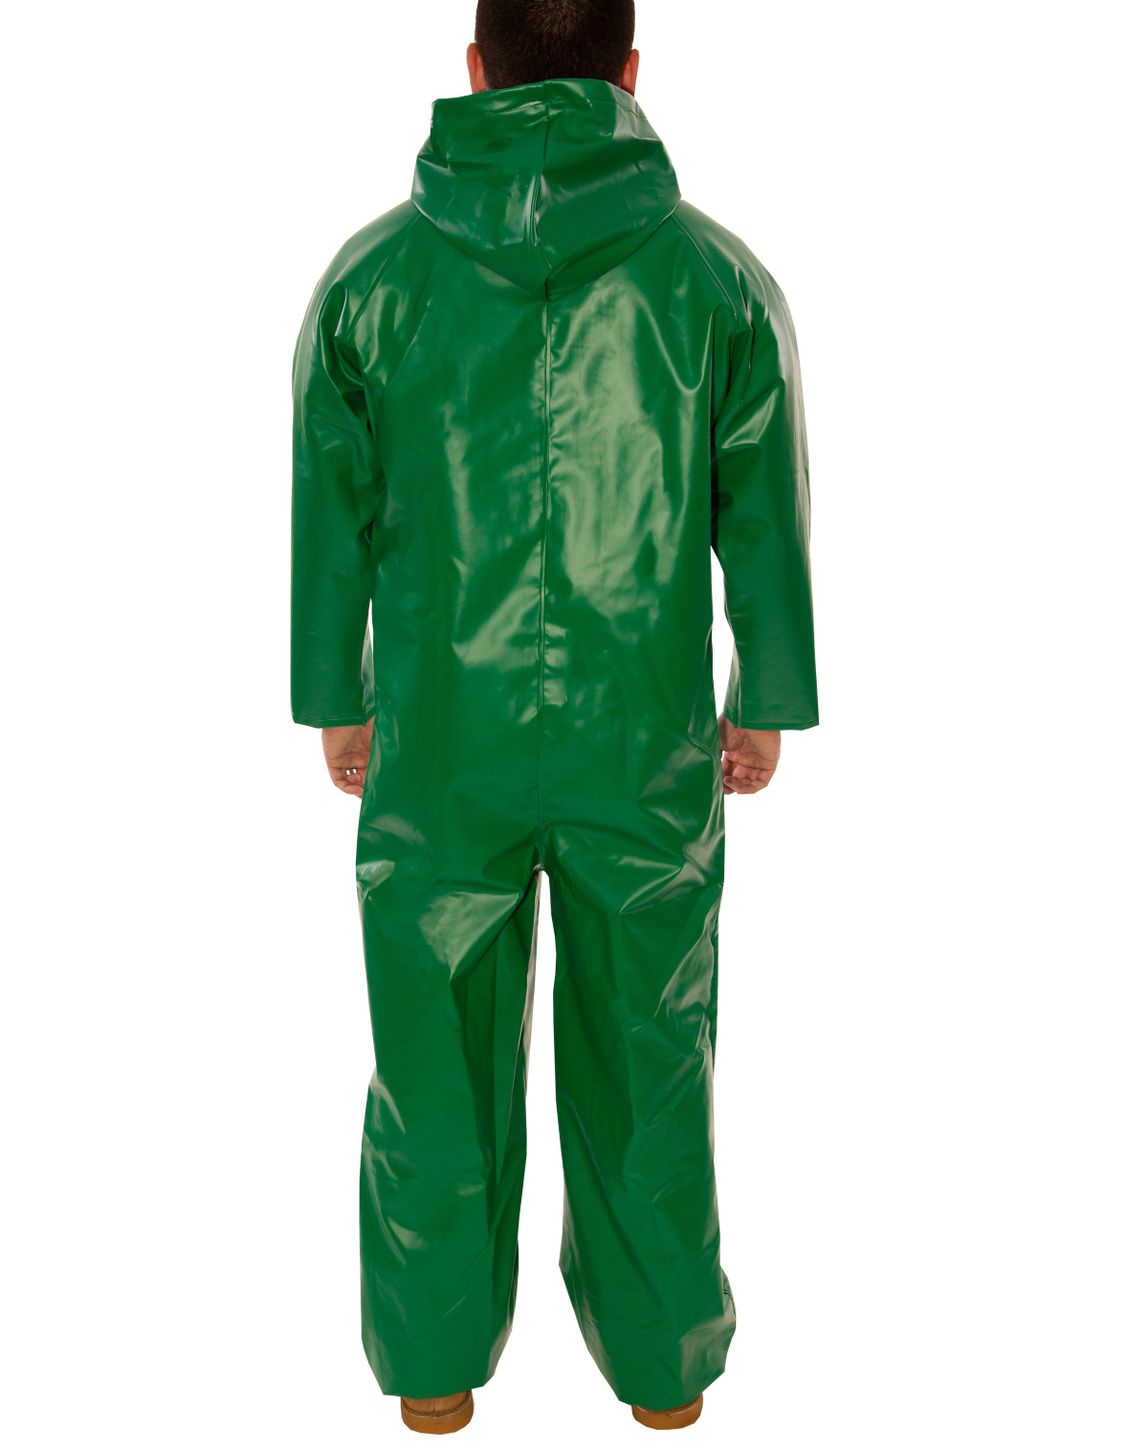 tingley-v41108-safetyflex-fire-resistant-coverall-pvc-coated-chemical-resistant-with-attached-hood-back.jpg